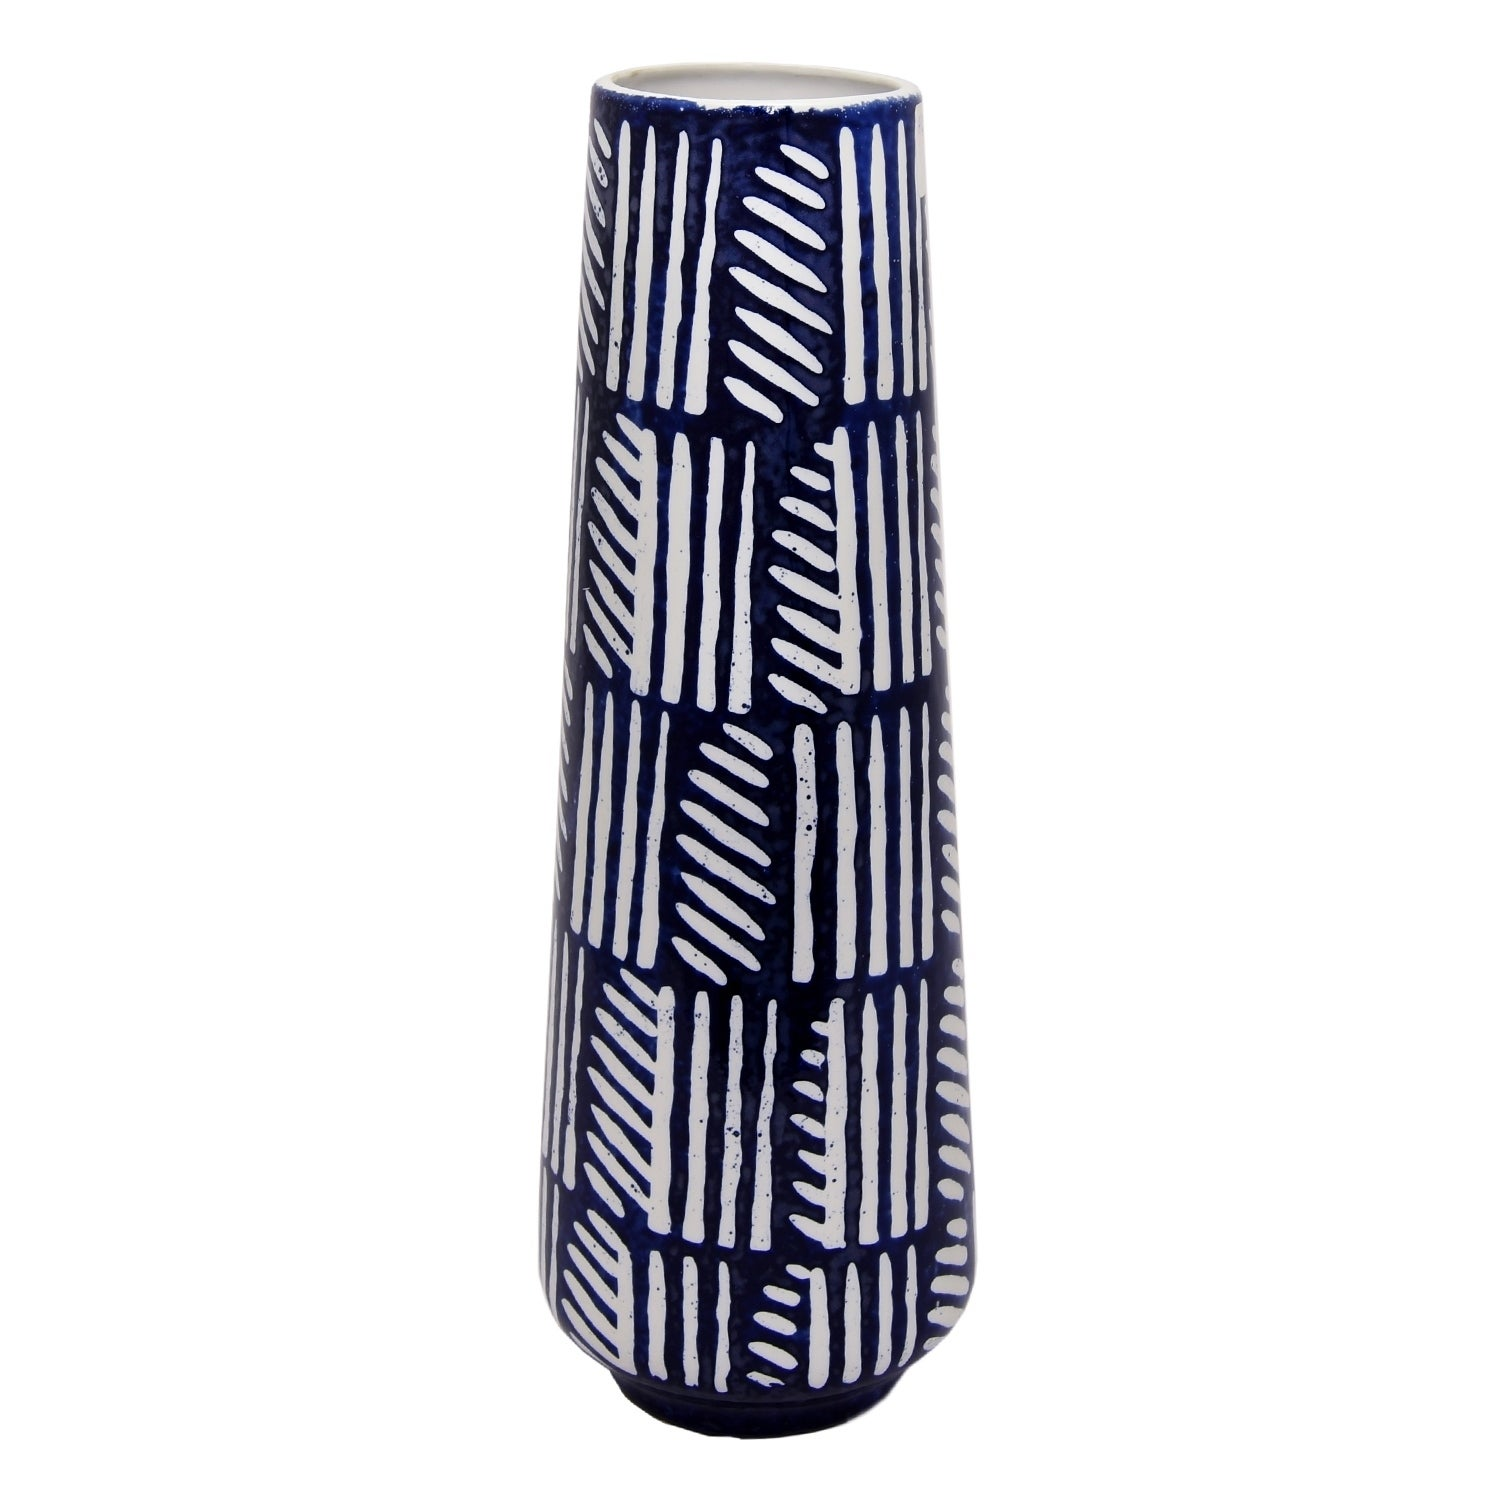 18.5 in. Three Hands Decorative Blue And White Ceramic Vase With Glossy Finish